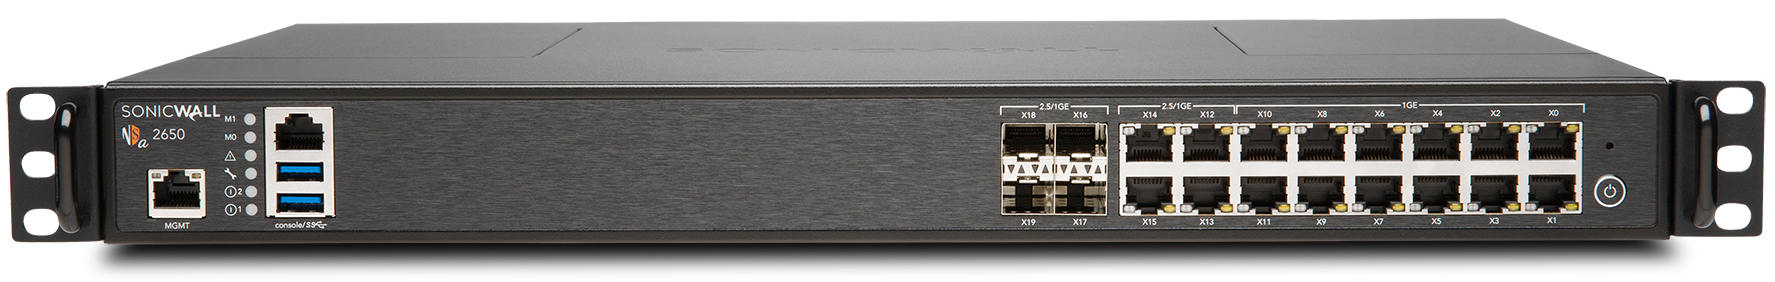 SonicWall NSA 2650 Network Security Appliance with 1 Year TotalSecure Advanced Edition Subscription